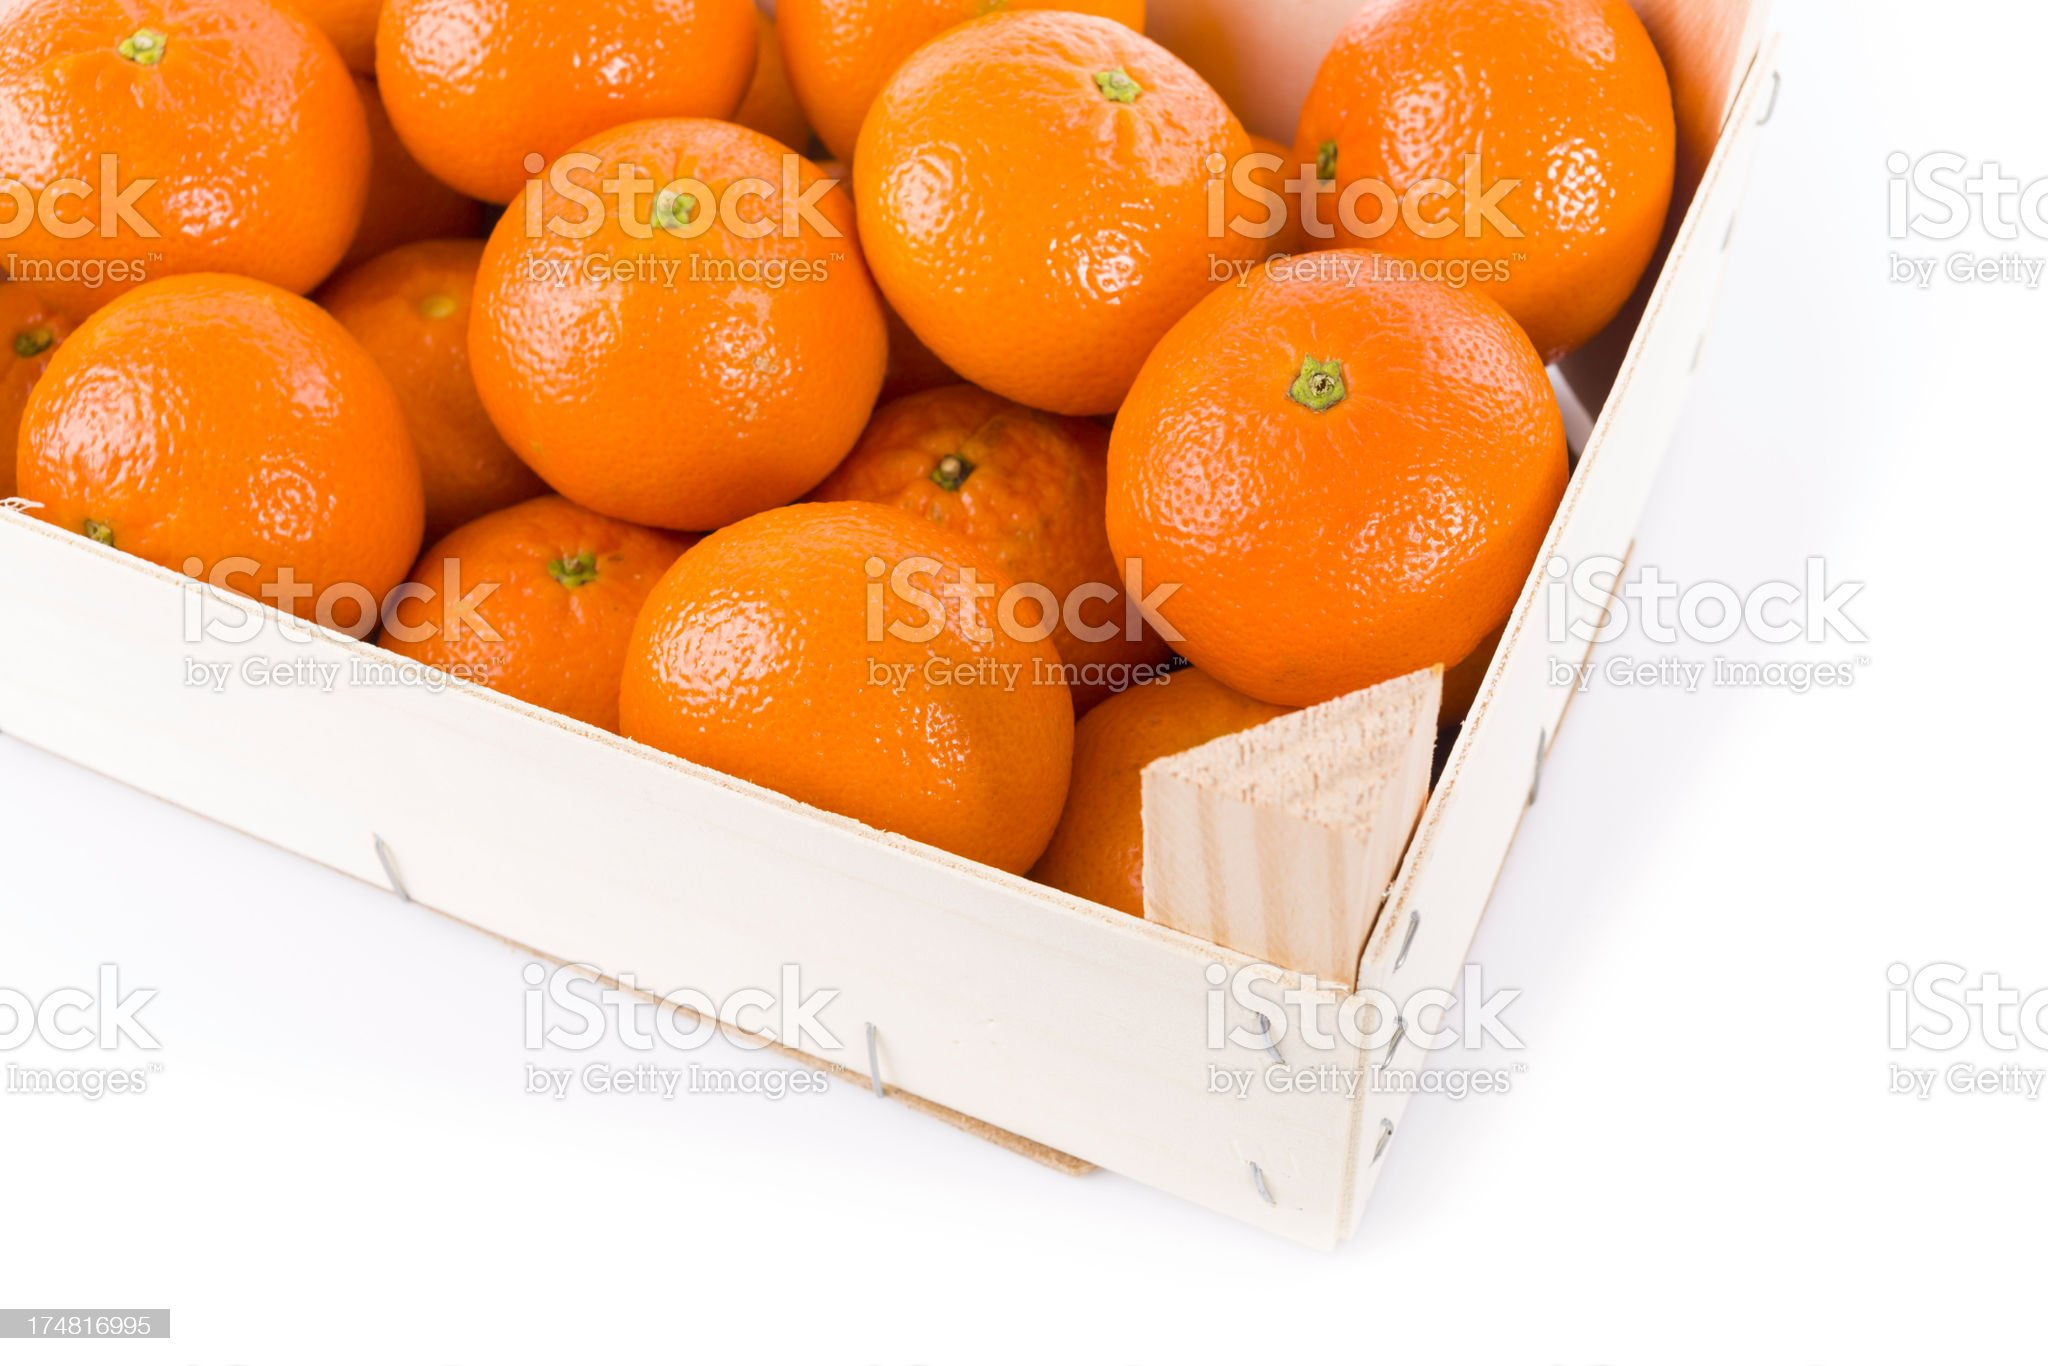 tangerine fruits in a box royalty-free stock photo